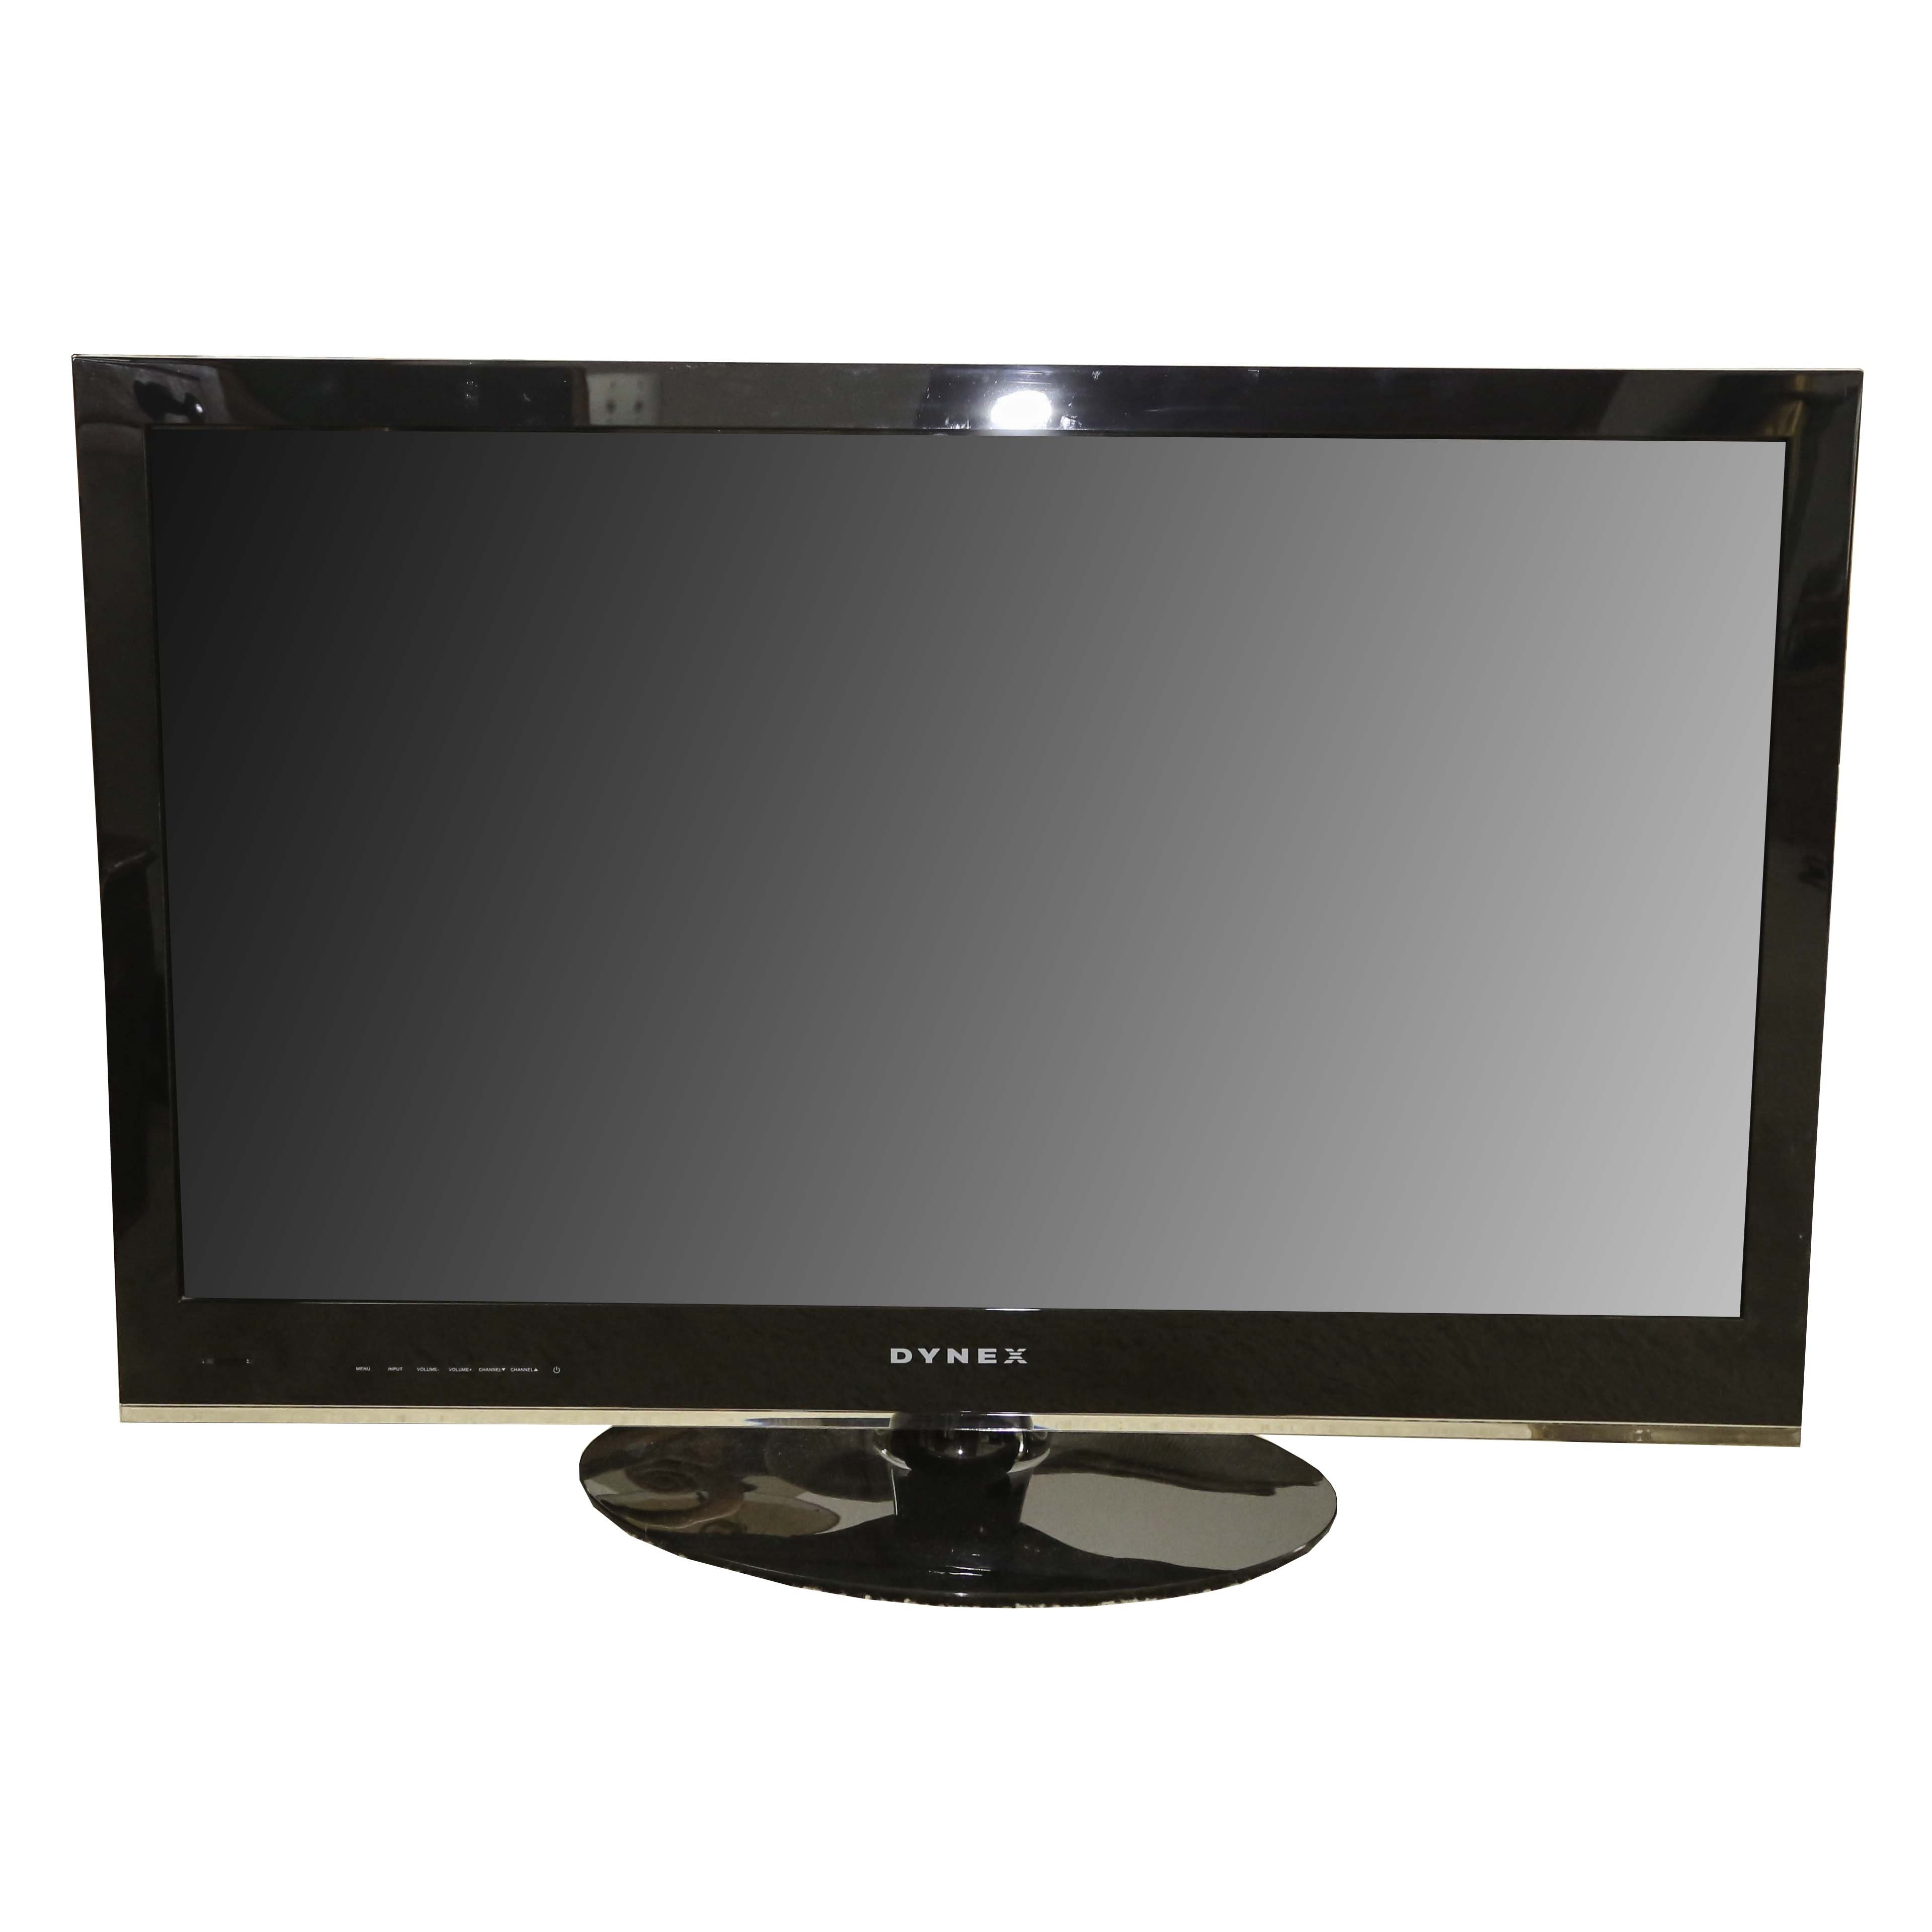 "Dynex 42"" LCD Flat Screen Television"